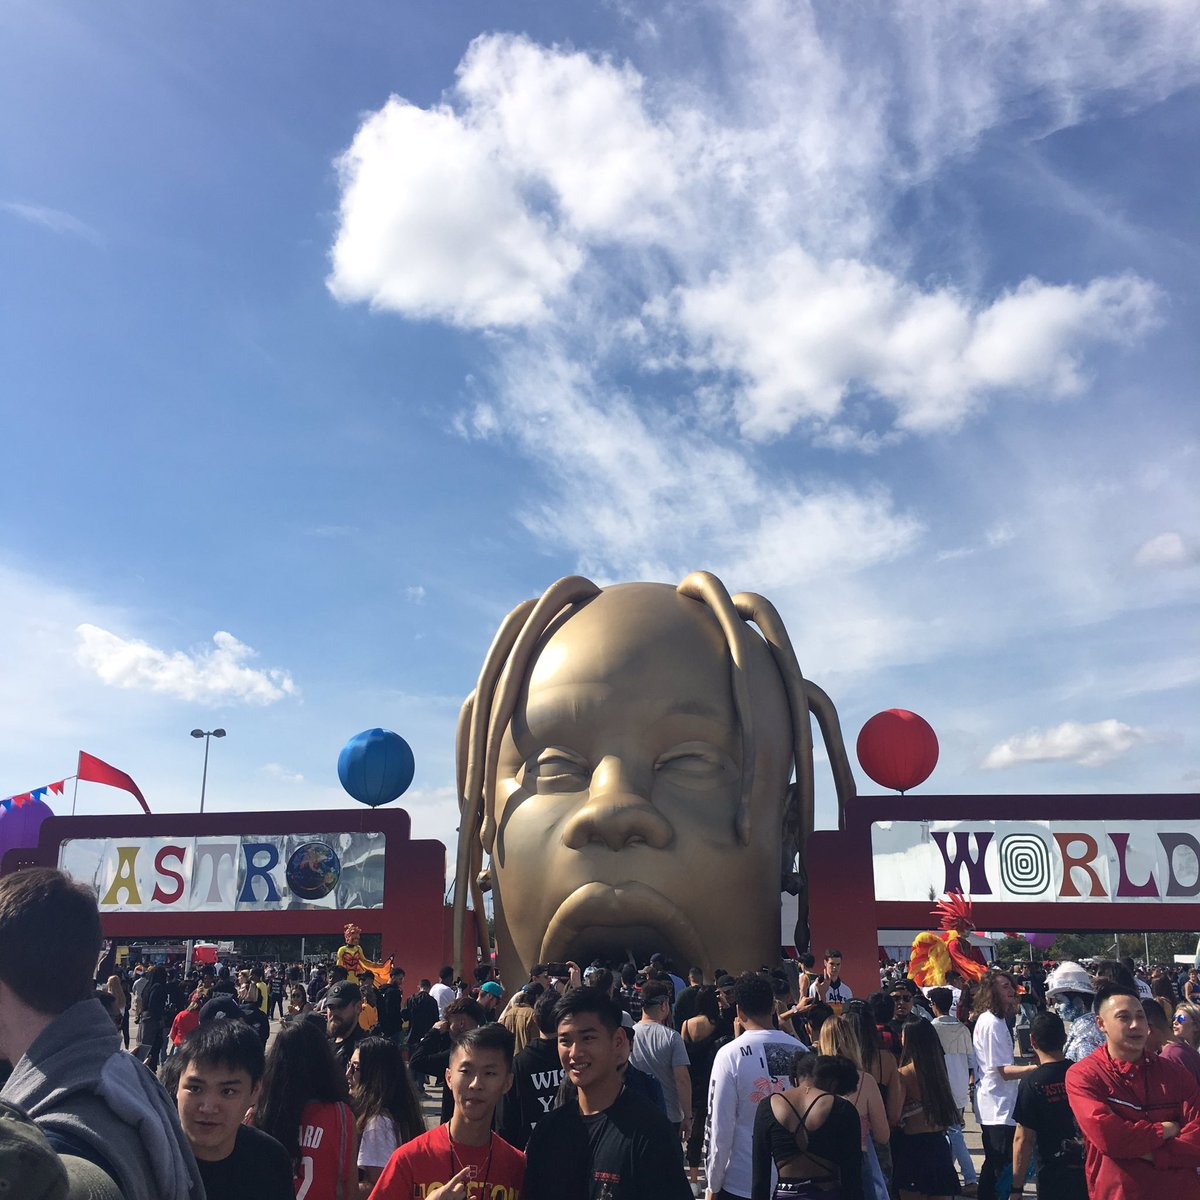 Hey y'all we're here at the very first Astroworld fest in HTX! 🎡🔥🎢 who else is here? #AstroworldFest2018